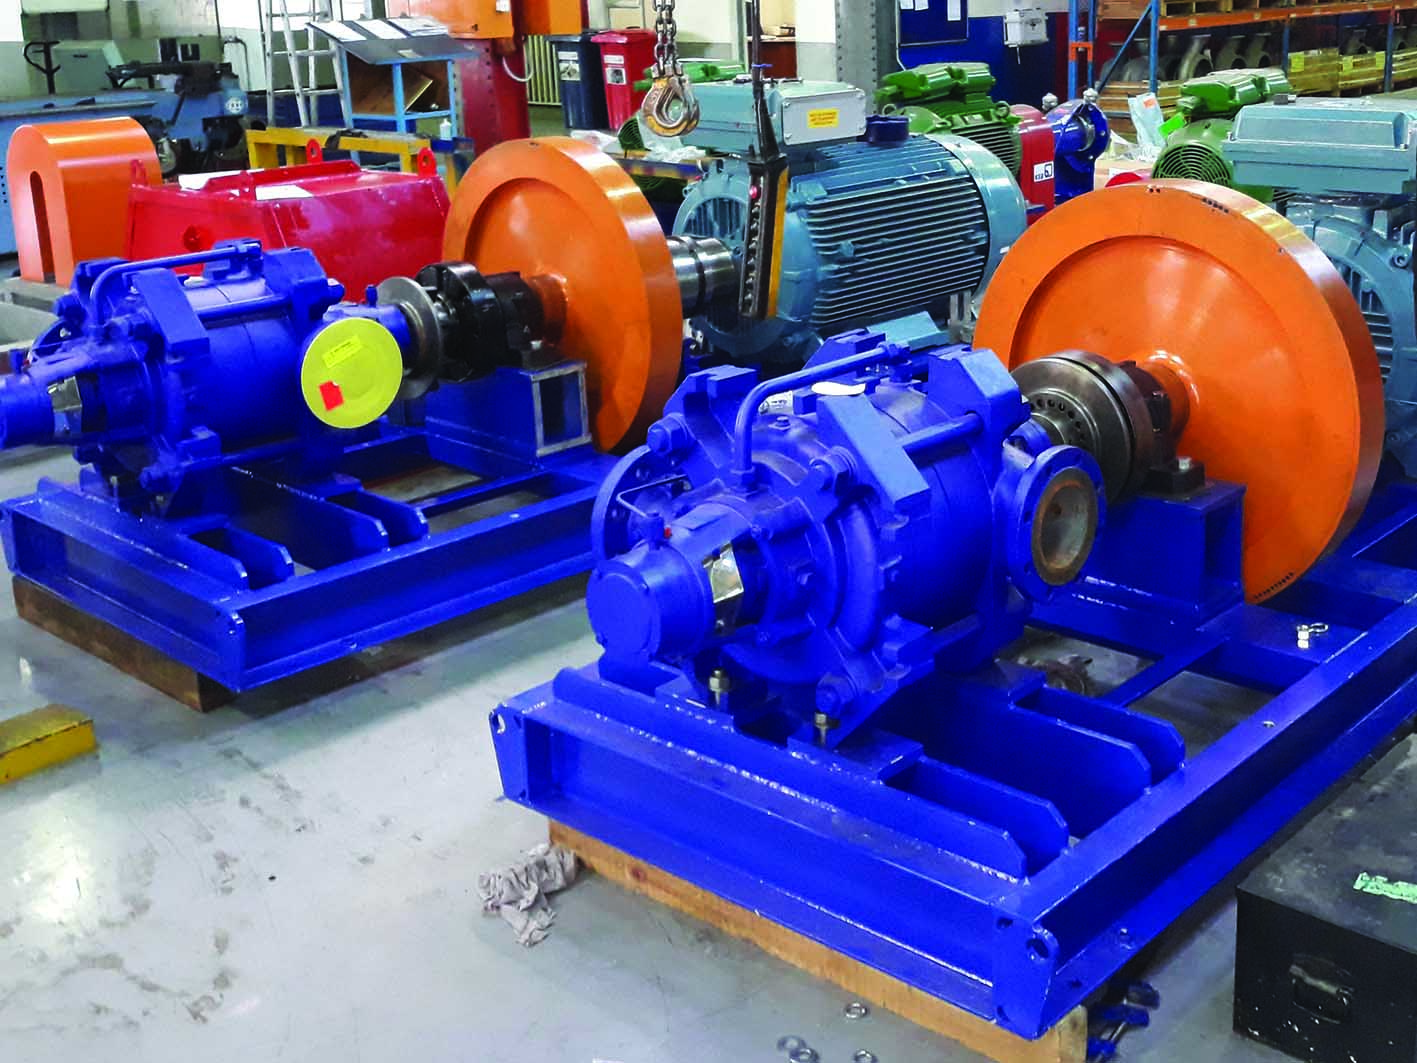 Flywheel pump prevents damage to infrastructure - EE Publishers